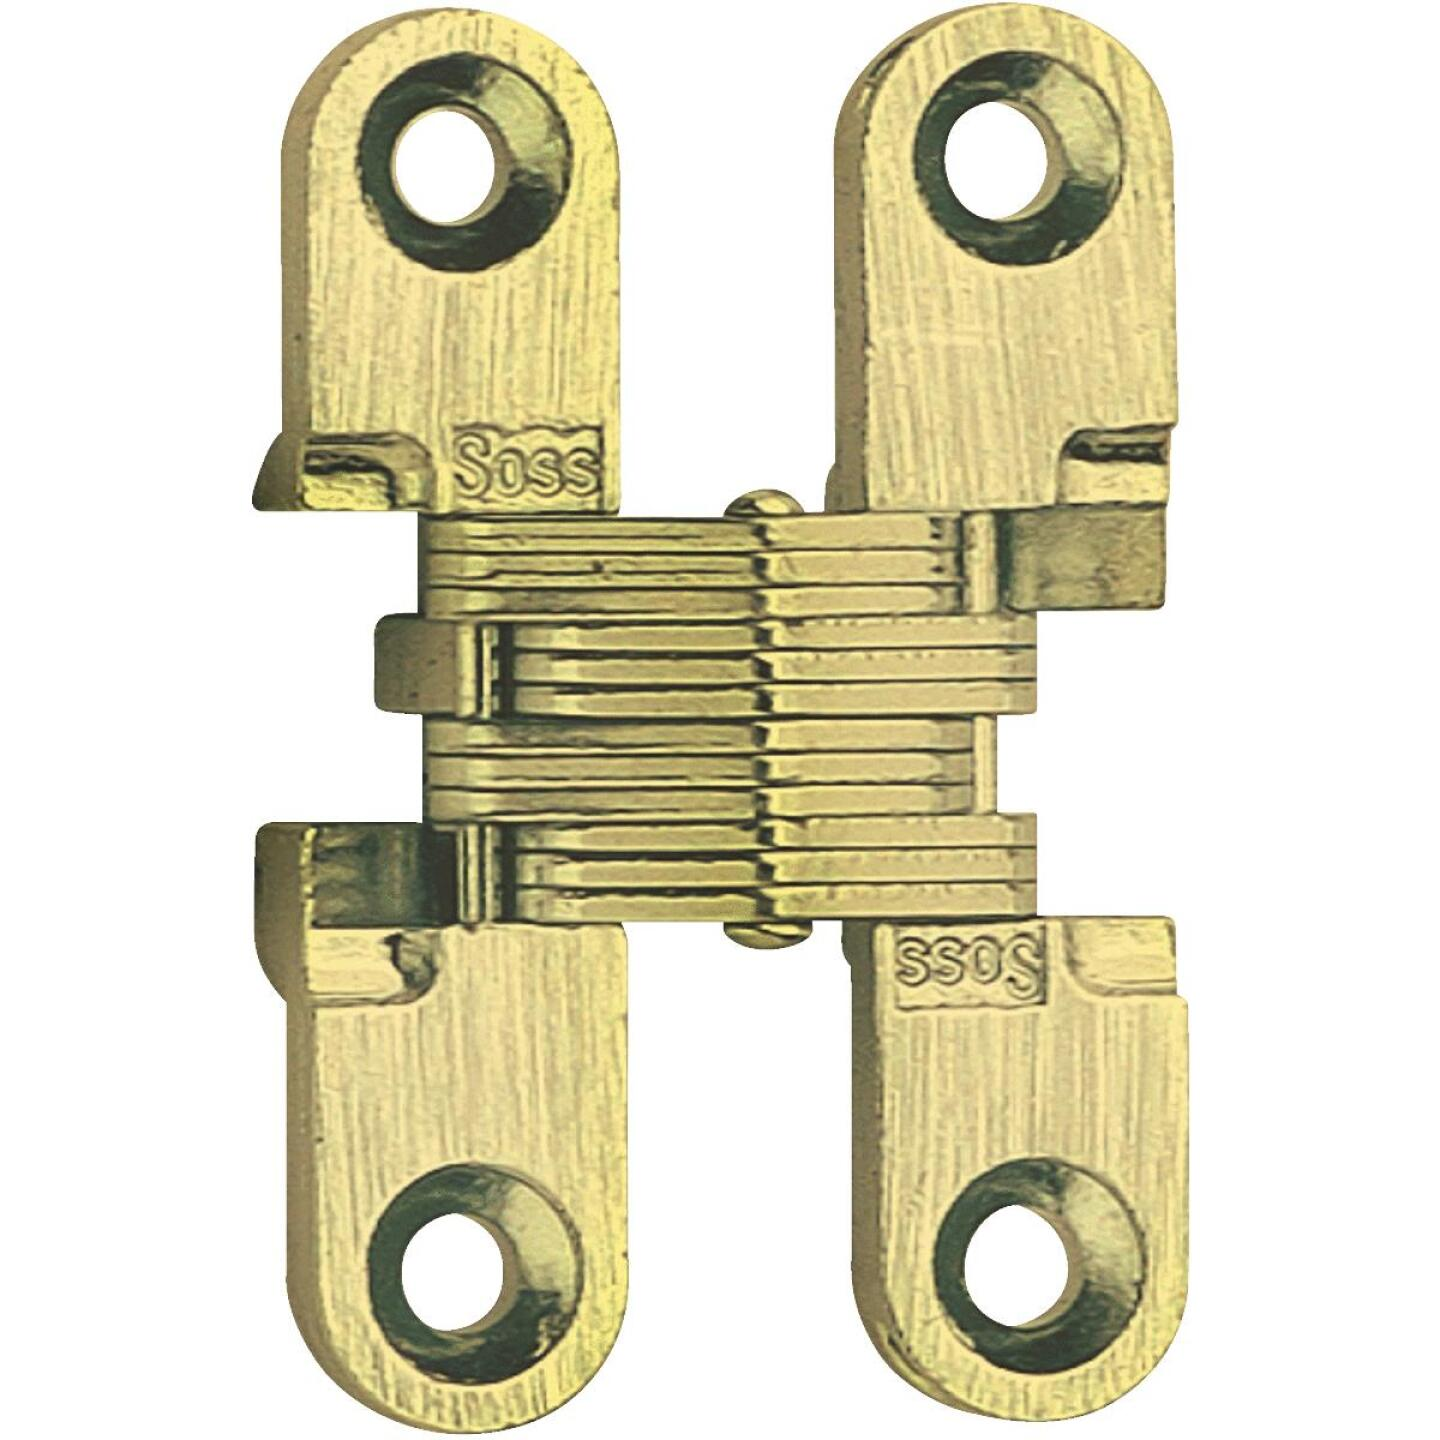 SOSS Satin Brass 1/2 In. x 1-1/2 In. Invisible Hinge, (2-Pack) Image 1